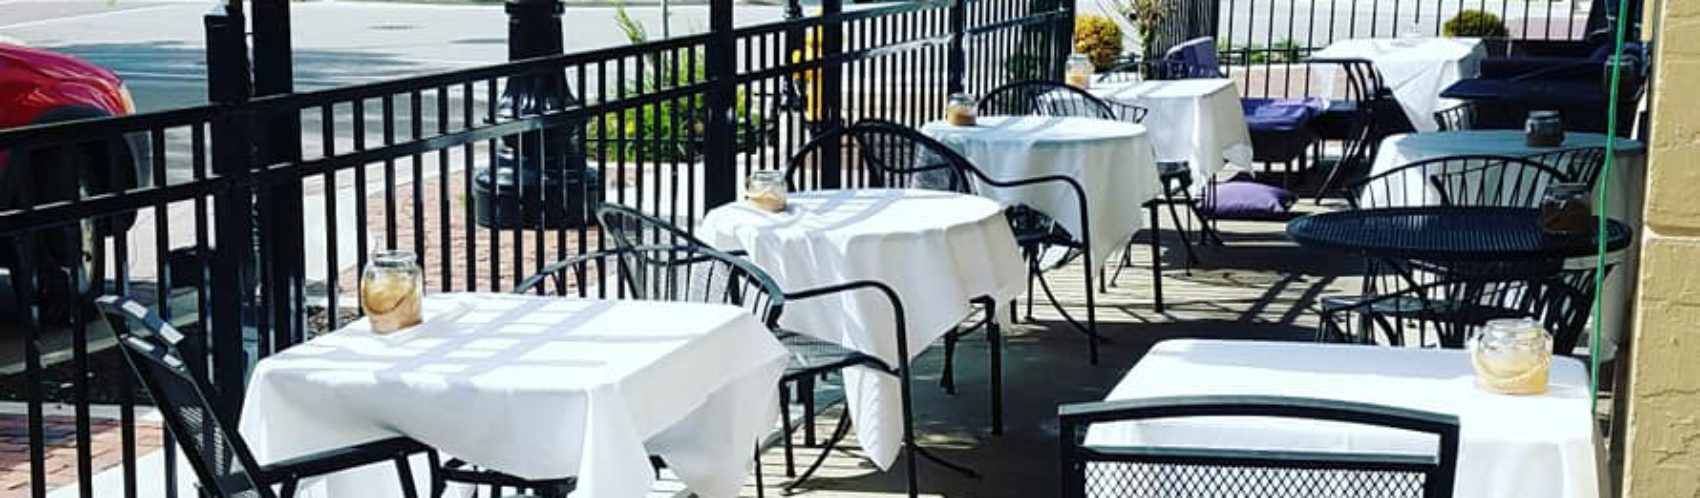 Bistro 501 Local French Inspired In The Heart Of Downtown Lafayette Indiana